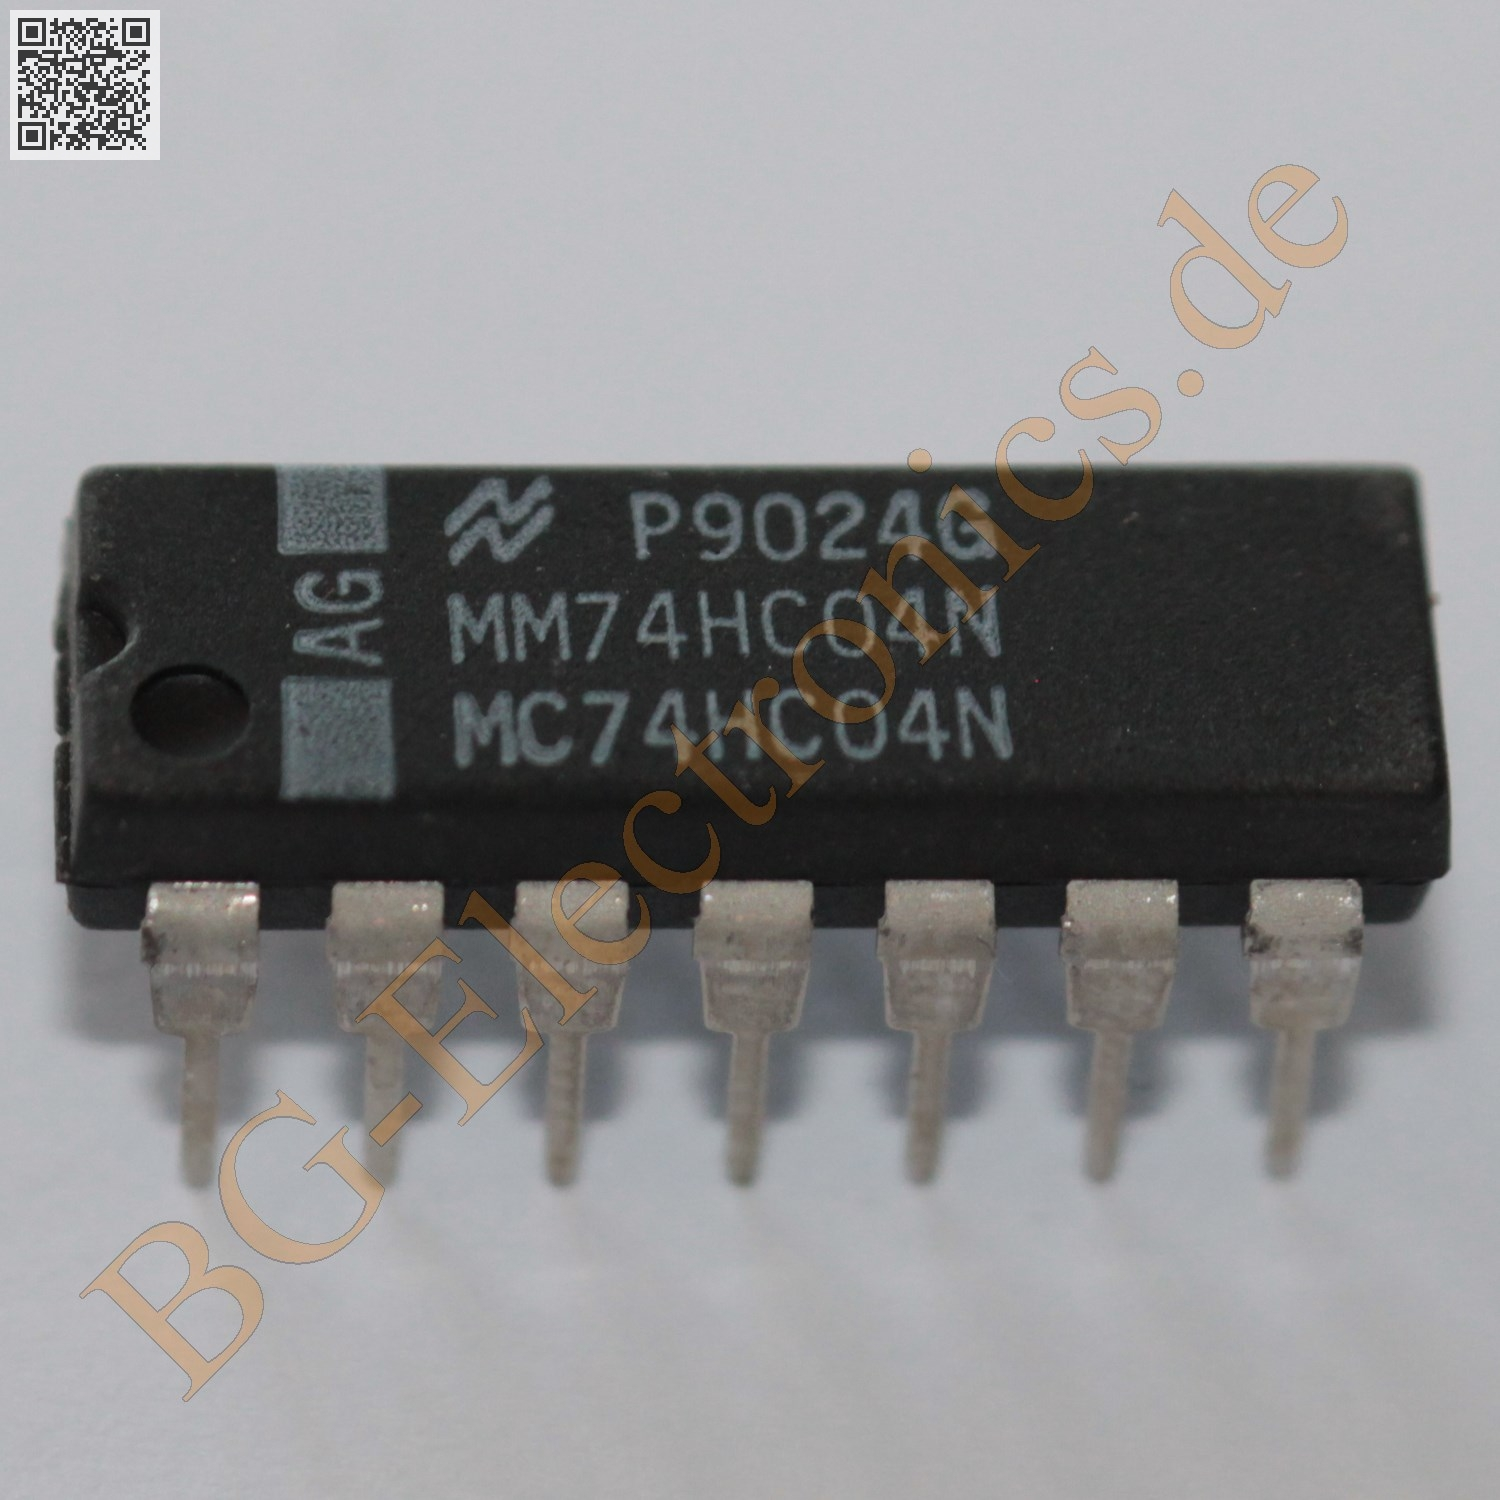 MM74HC04N, BG-ELECTRONICS MM74HC04N, 74HC04N, MC74HC04N